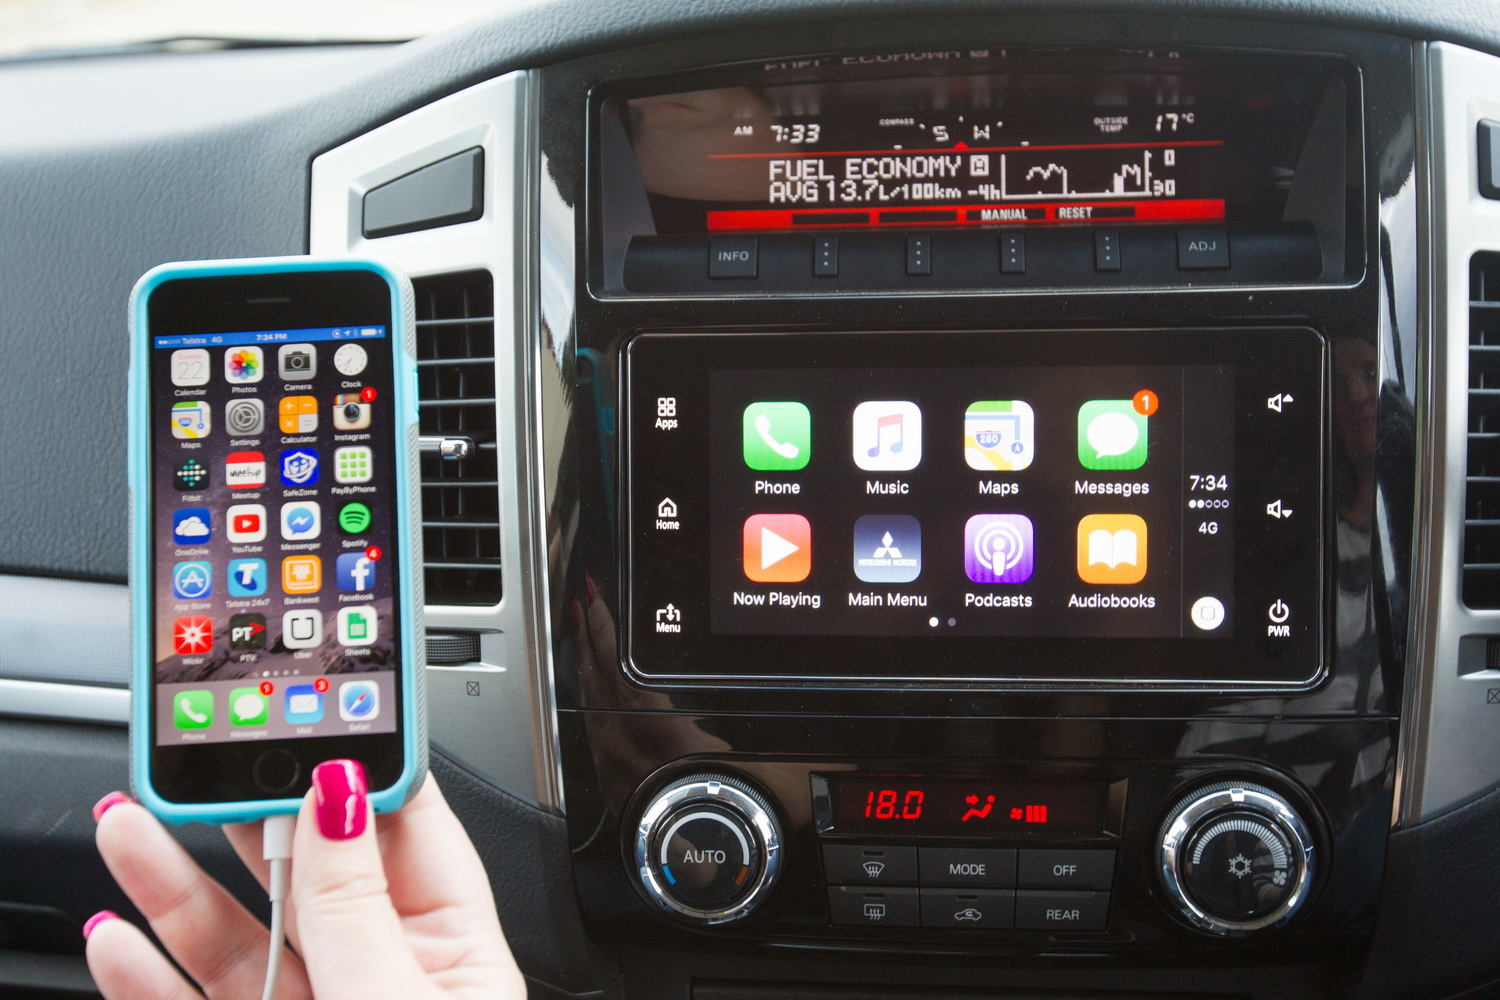 Testing Android Auto And Apple Carplay In A 2016 Mitsubishi Pajero Gls Practical Motoring